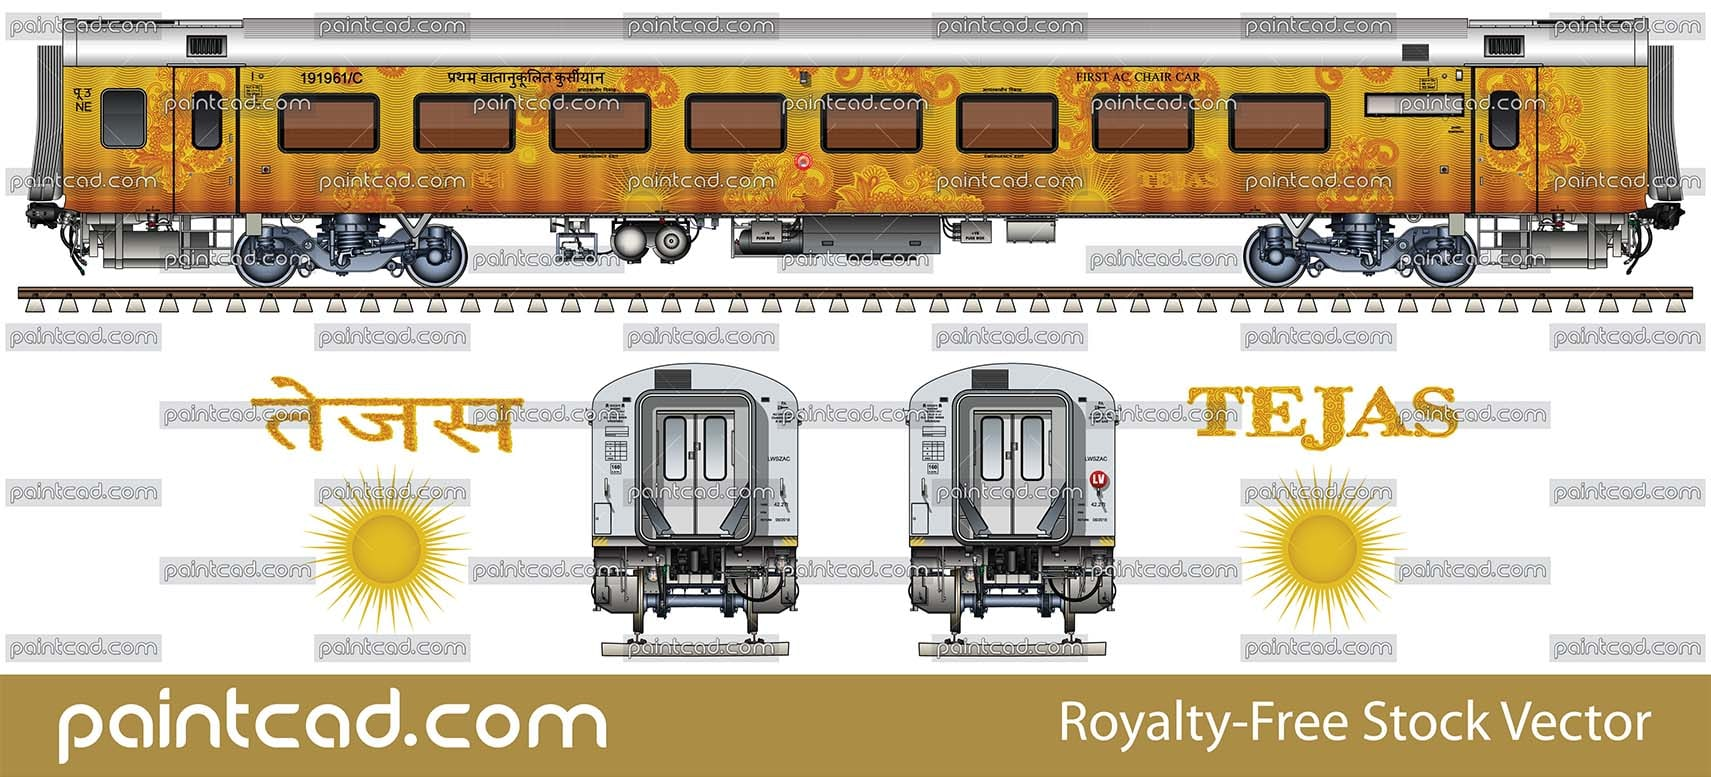 FIRST AC CHAIR CAR by Lucknow - New Delhi Tejas Express - vector illustration